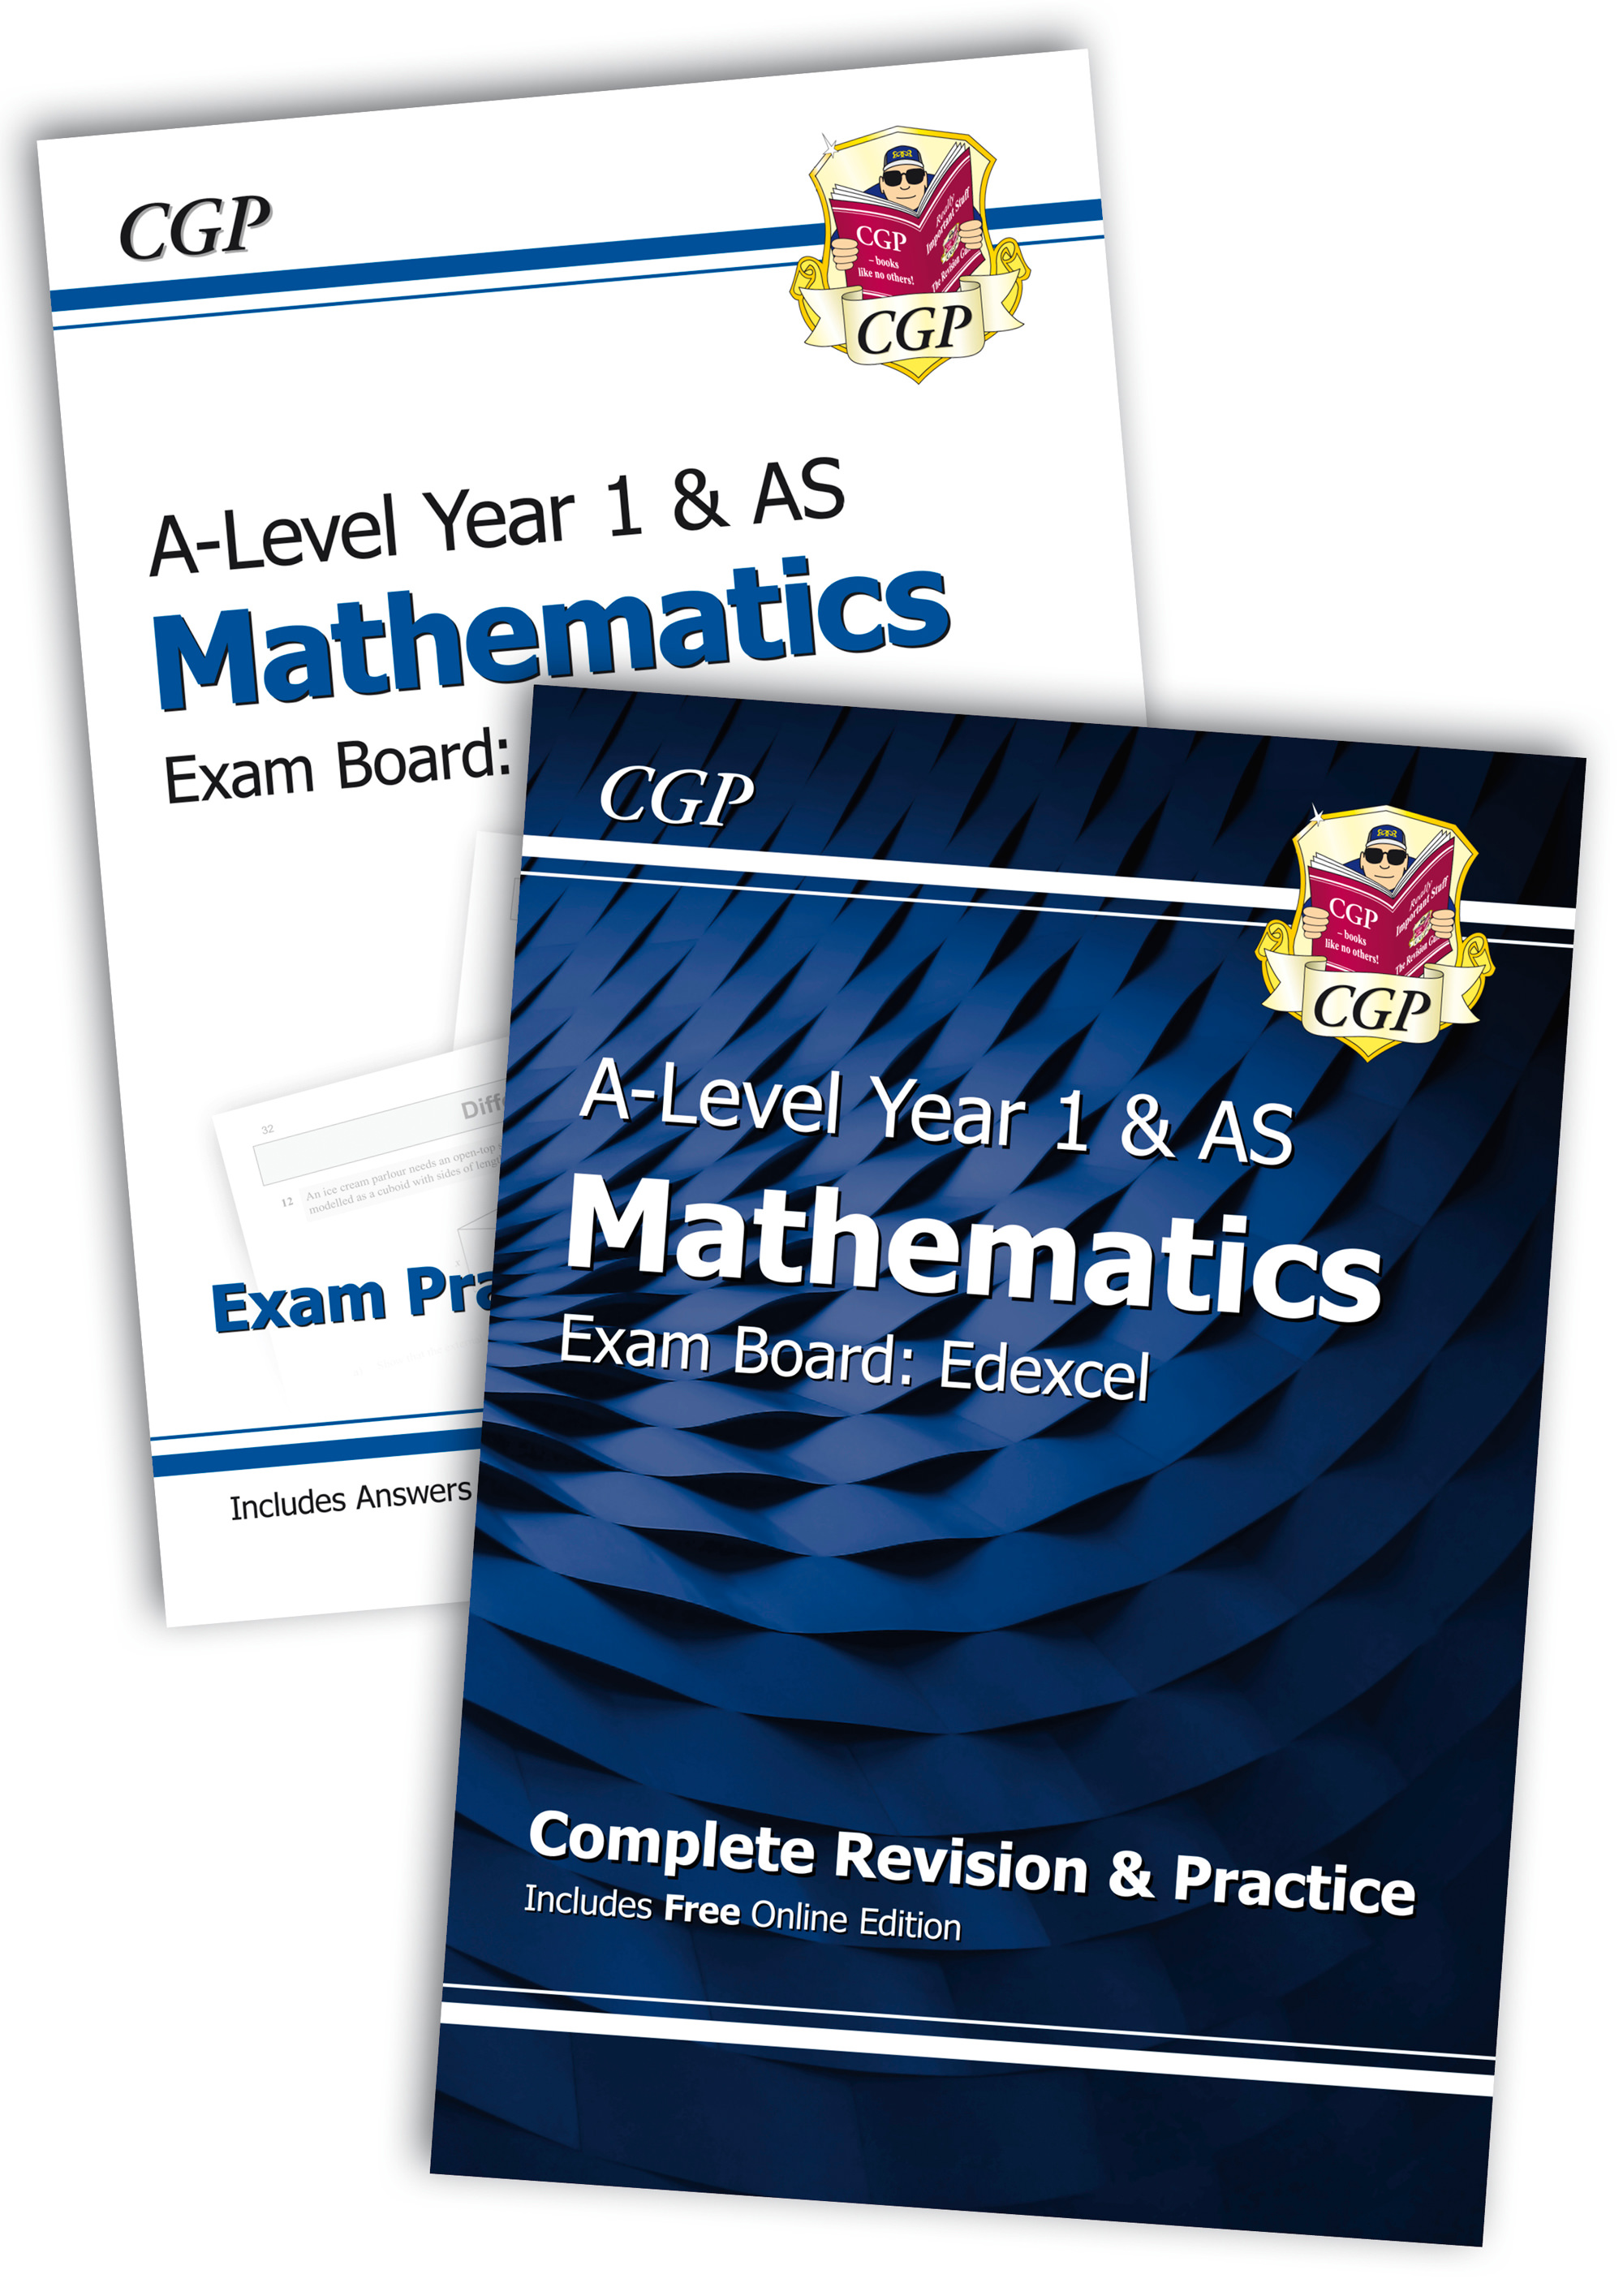 MEHB51 - Complete Revision and Exam Practice A-Level Maths Bundle: Edexcel Year 1 & AS